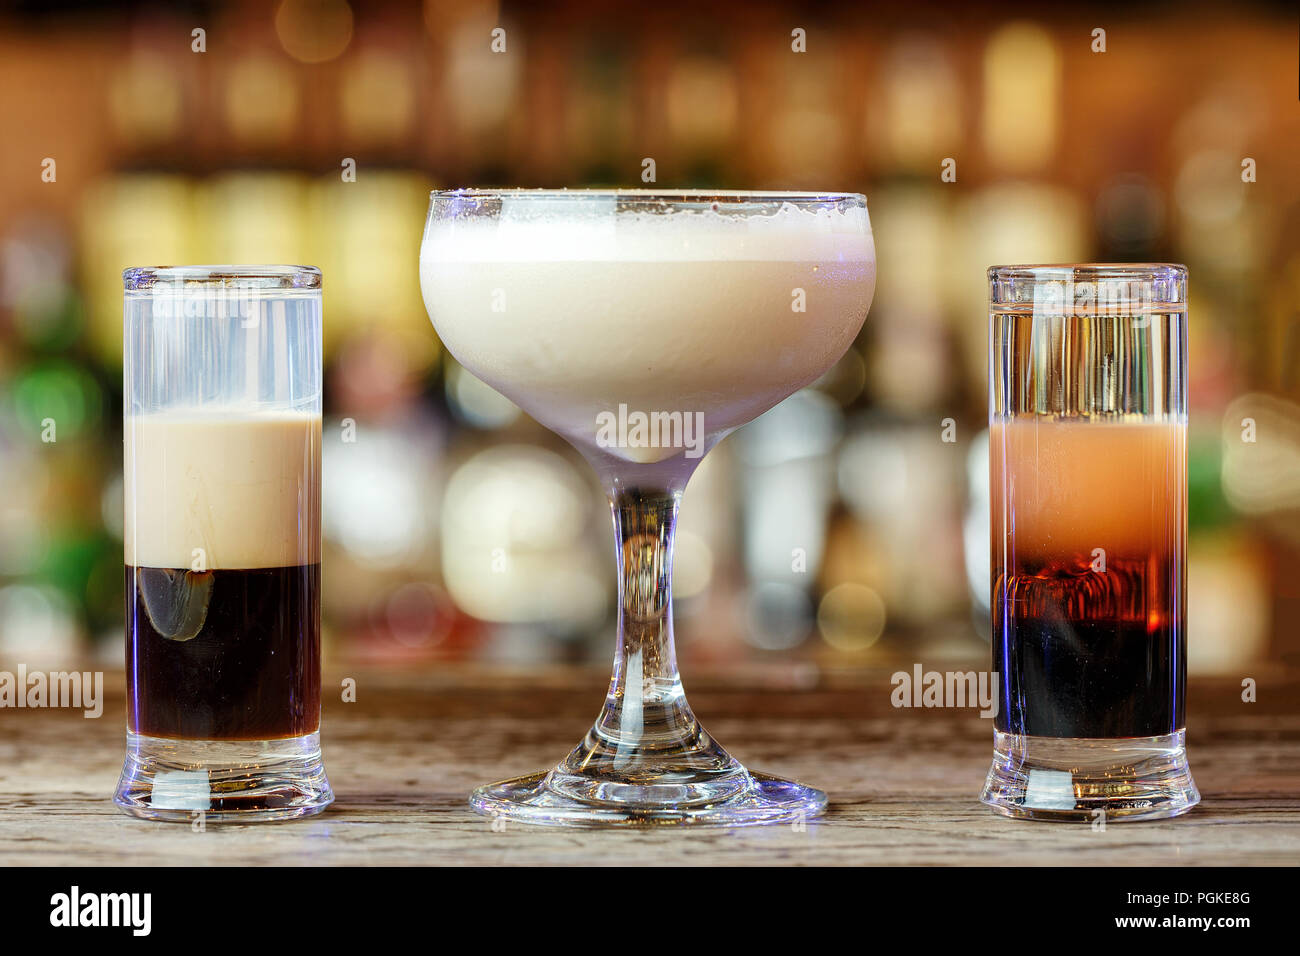 Different club cocktails in different glasses stand on a bar counter on a blurred background of alcohol - Stock Image